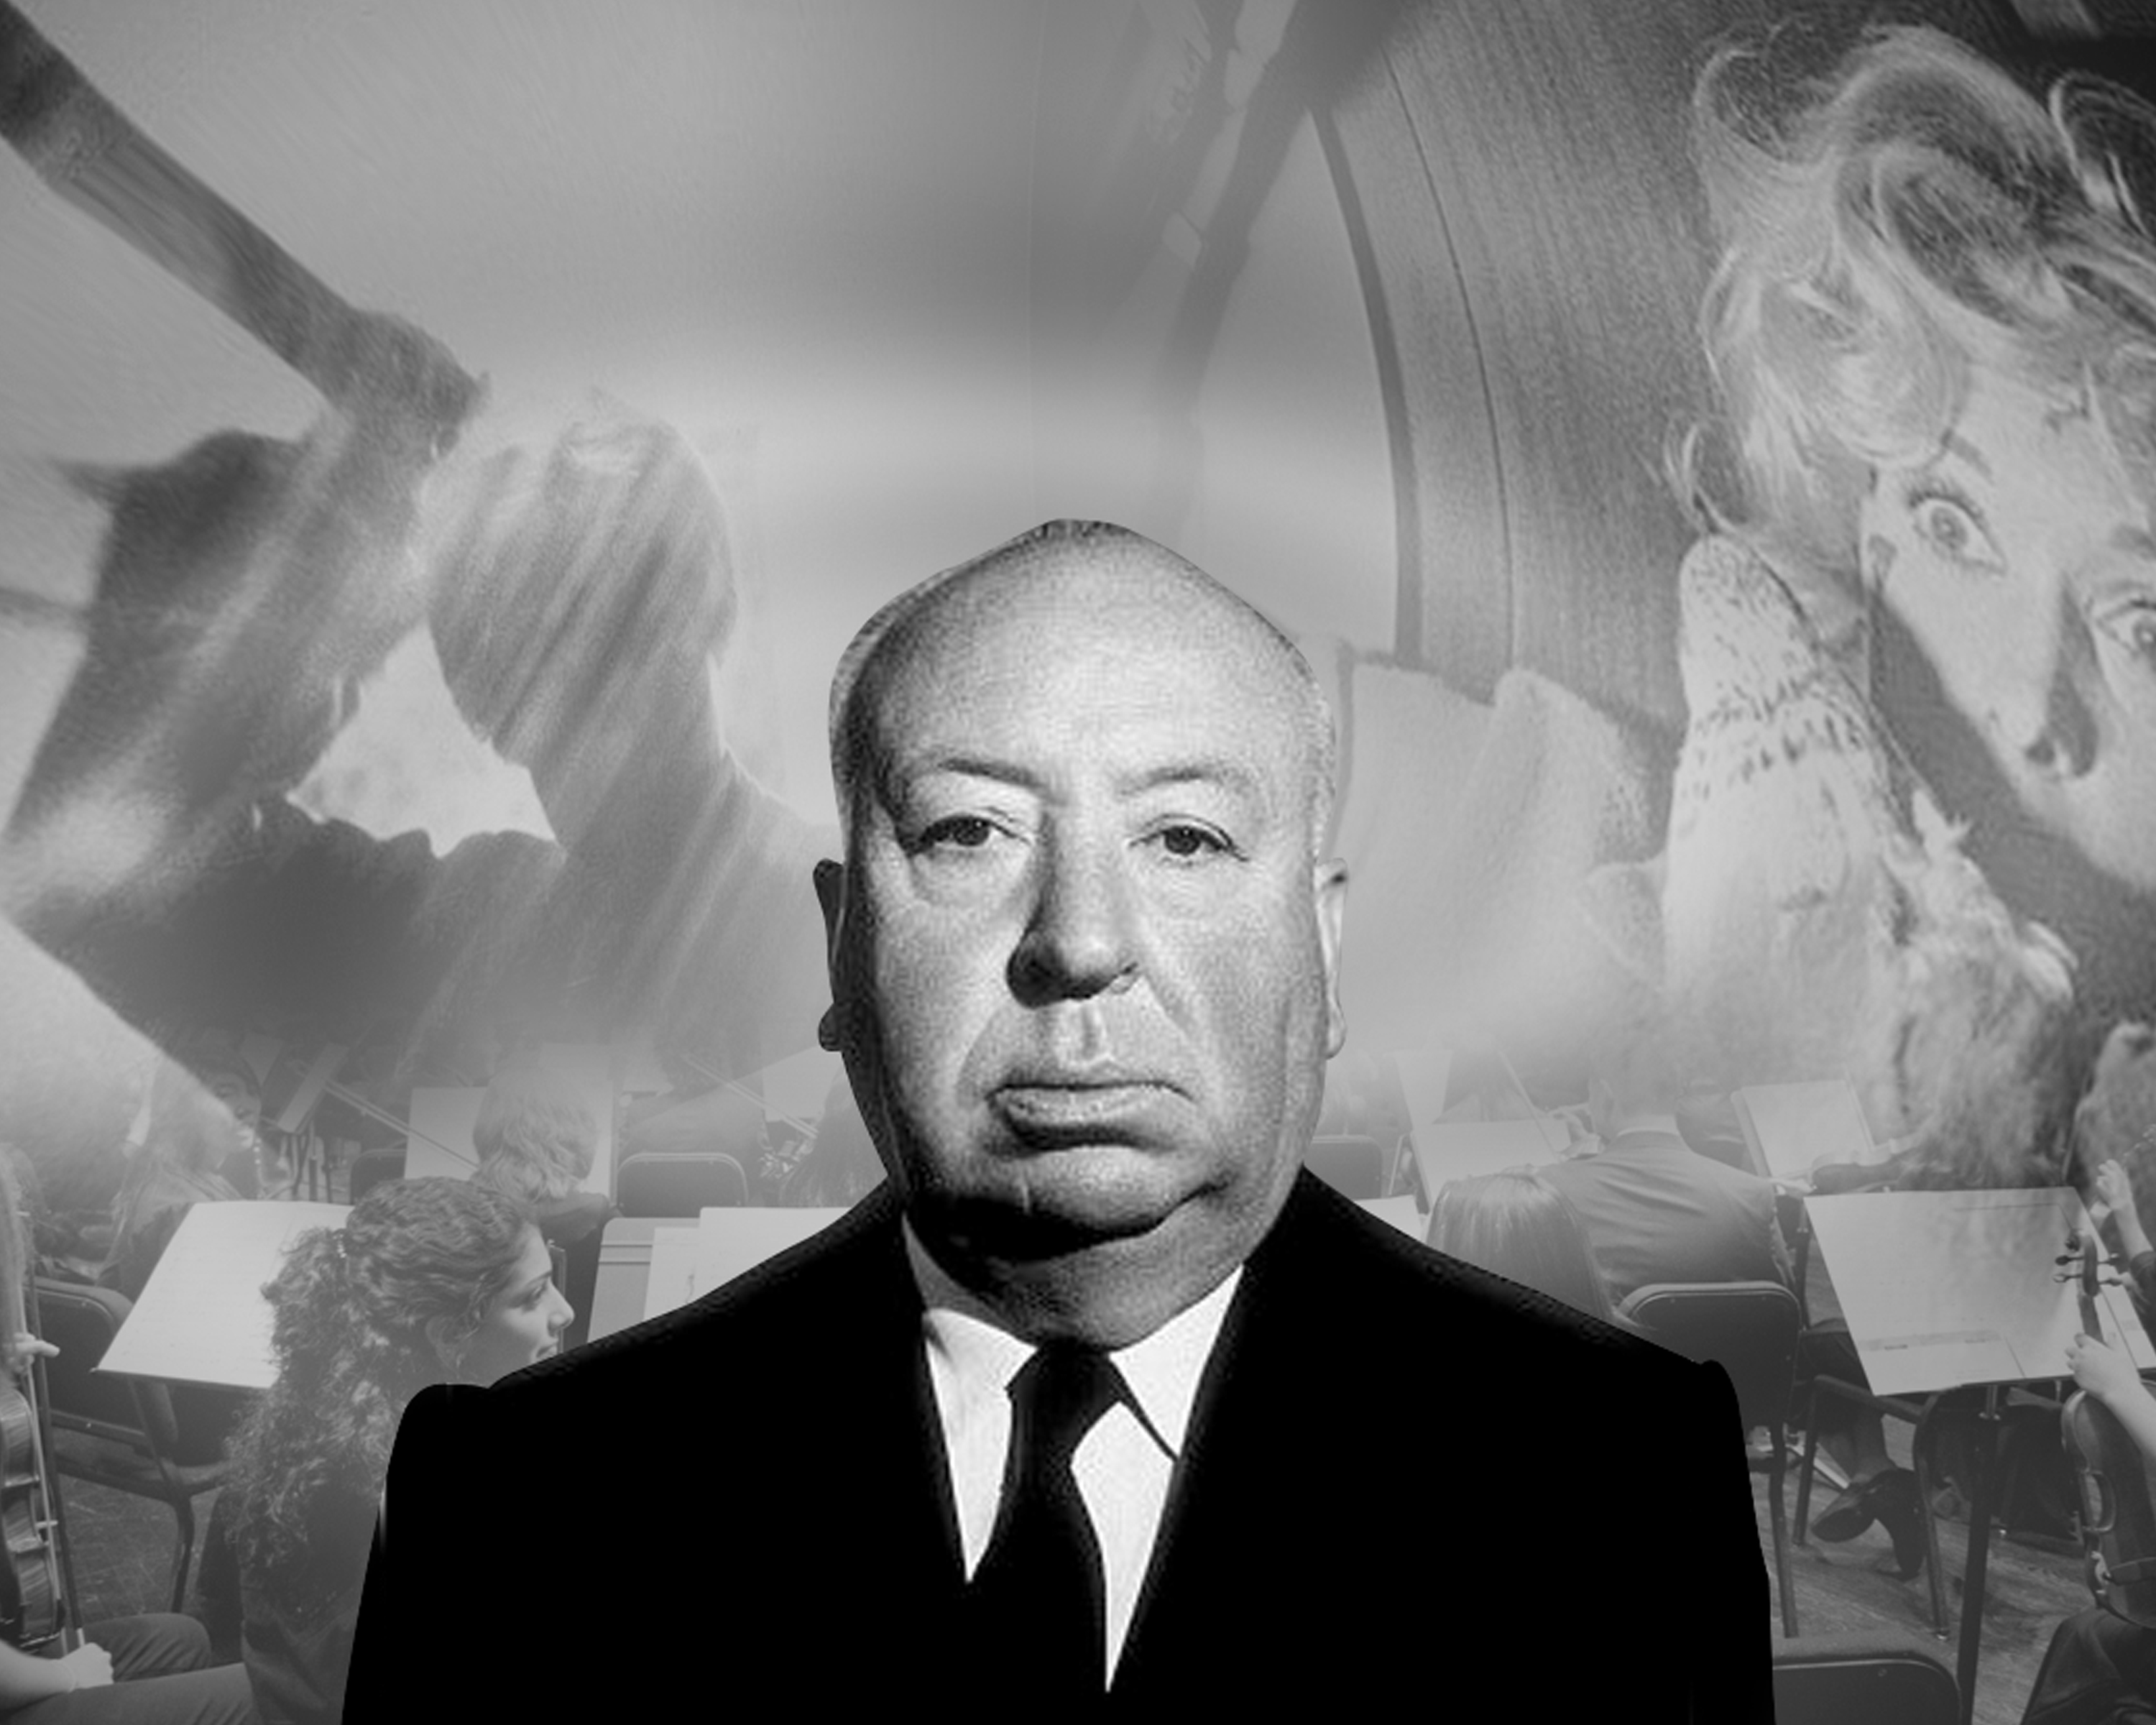 alfred hitchcock king of suspense Hitchcock and the architecture of suspense steven jacobs' new book, 'the wrong house,' investigates how alfred hitchcock used architecture to create suspense in his films.